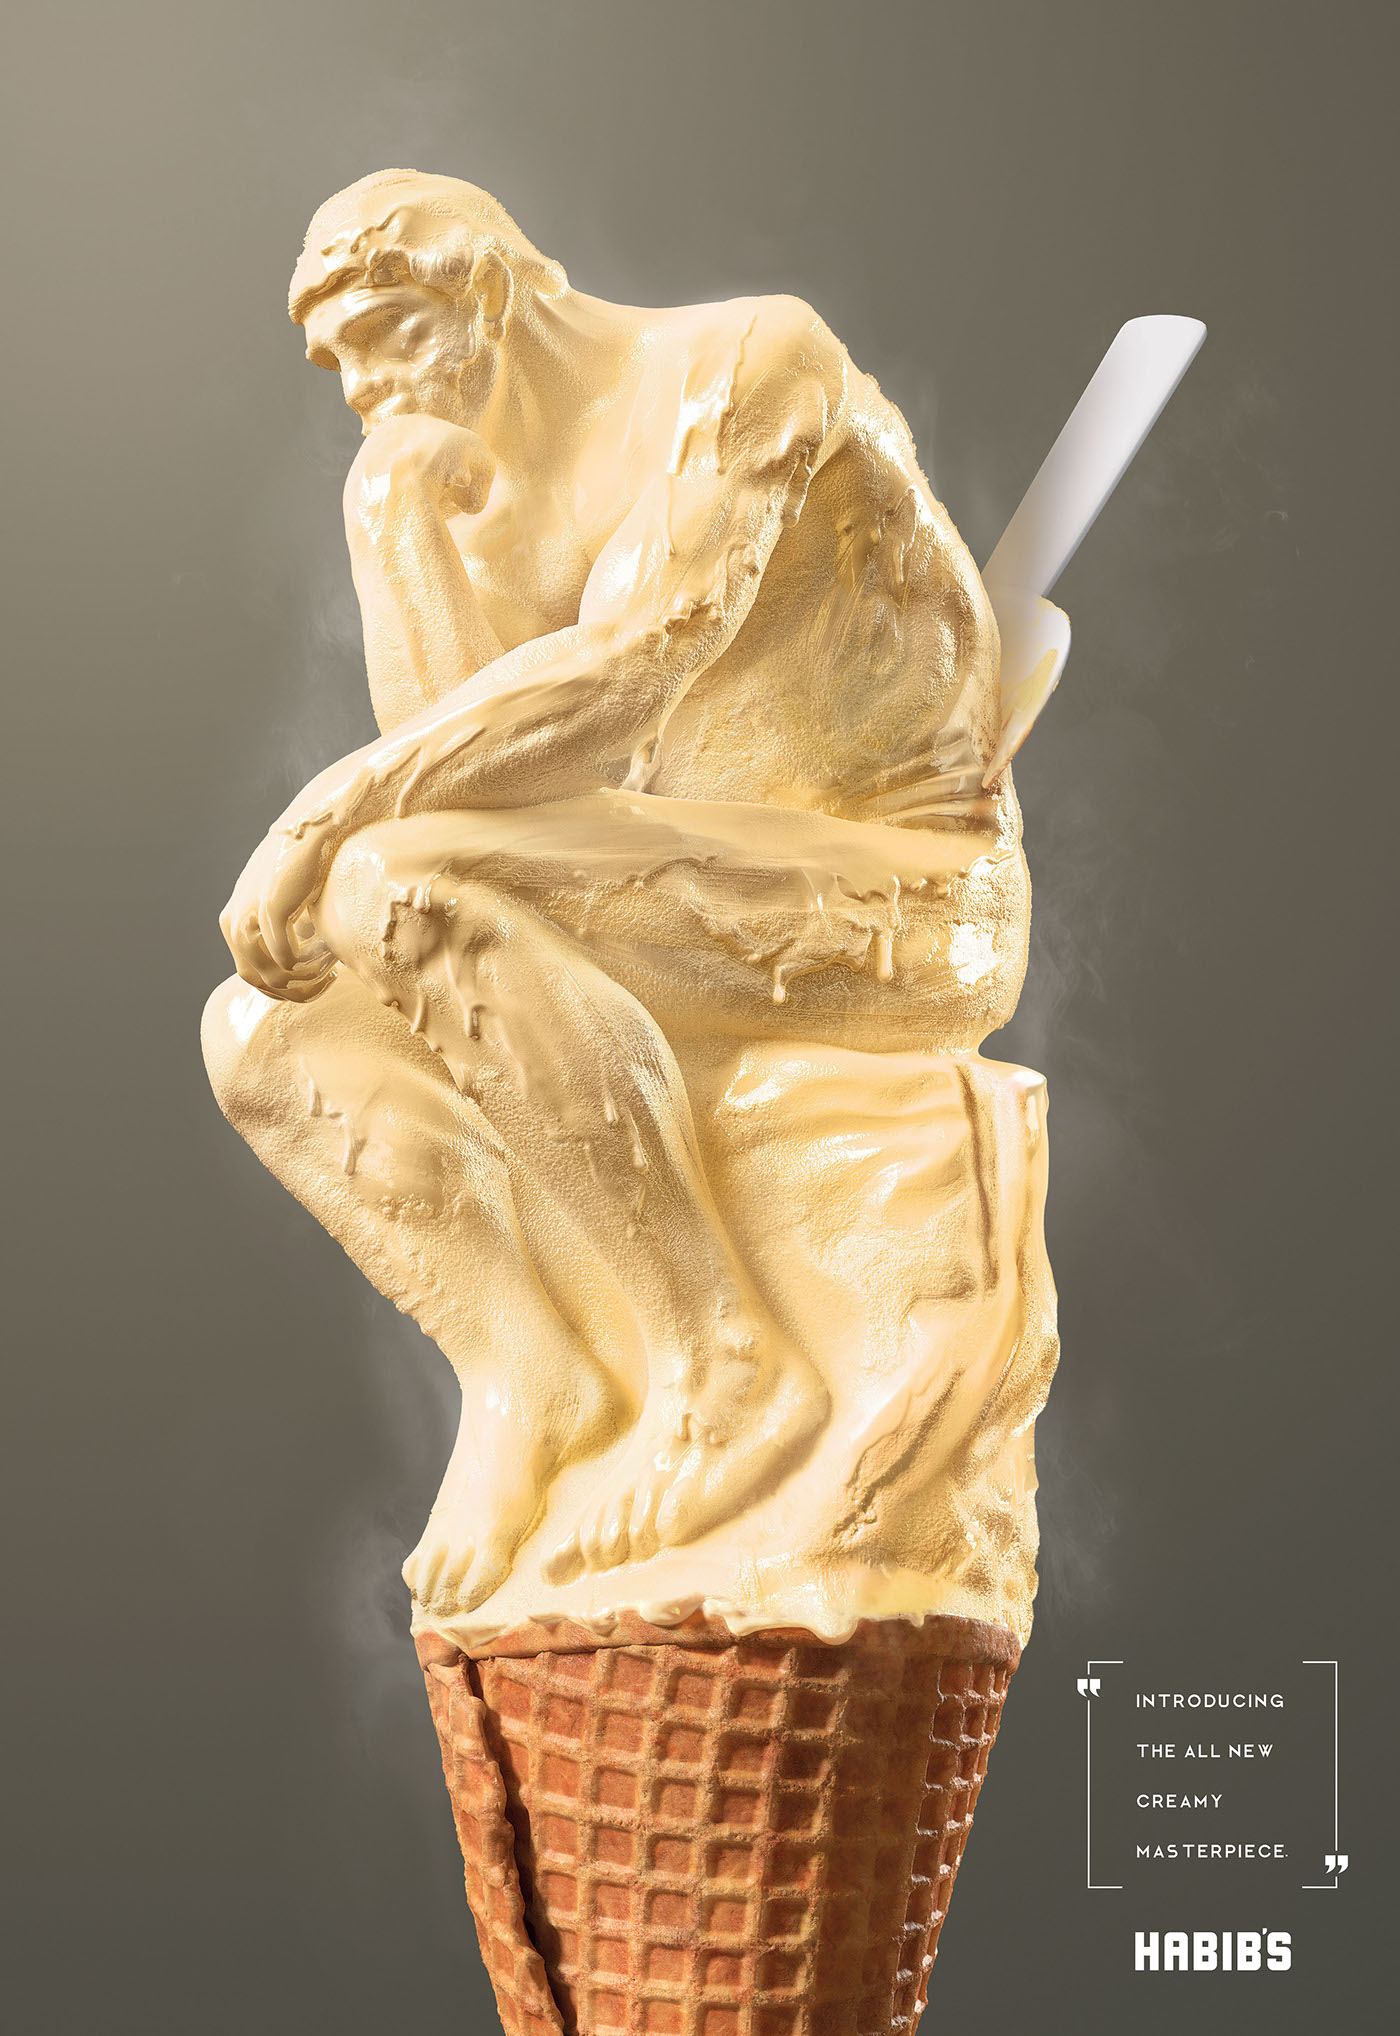 Habib's Ice Cream Sculpture - Introducing the all new creamy masterpiece - The Thinker